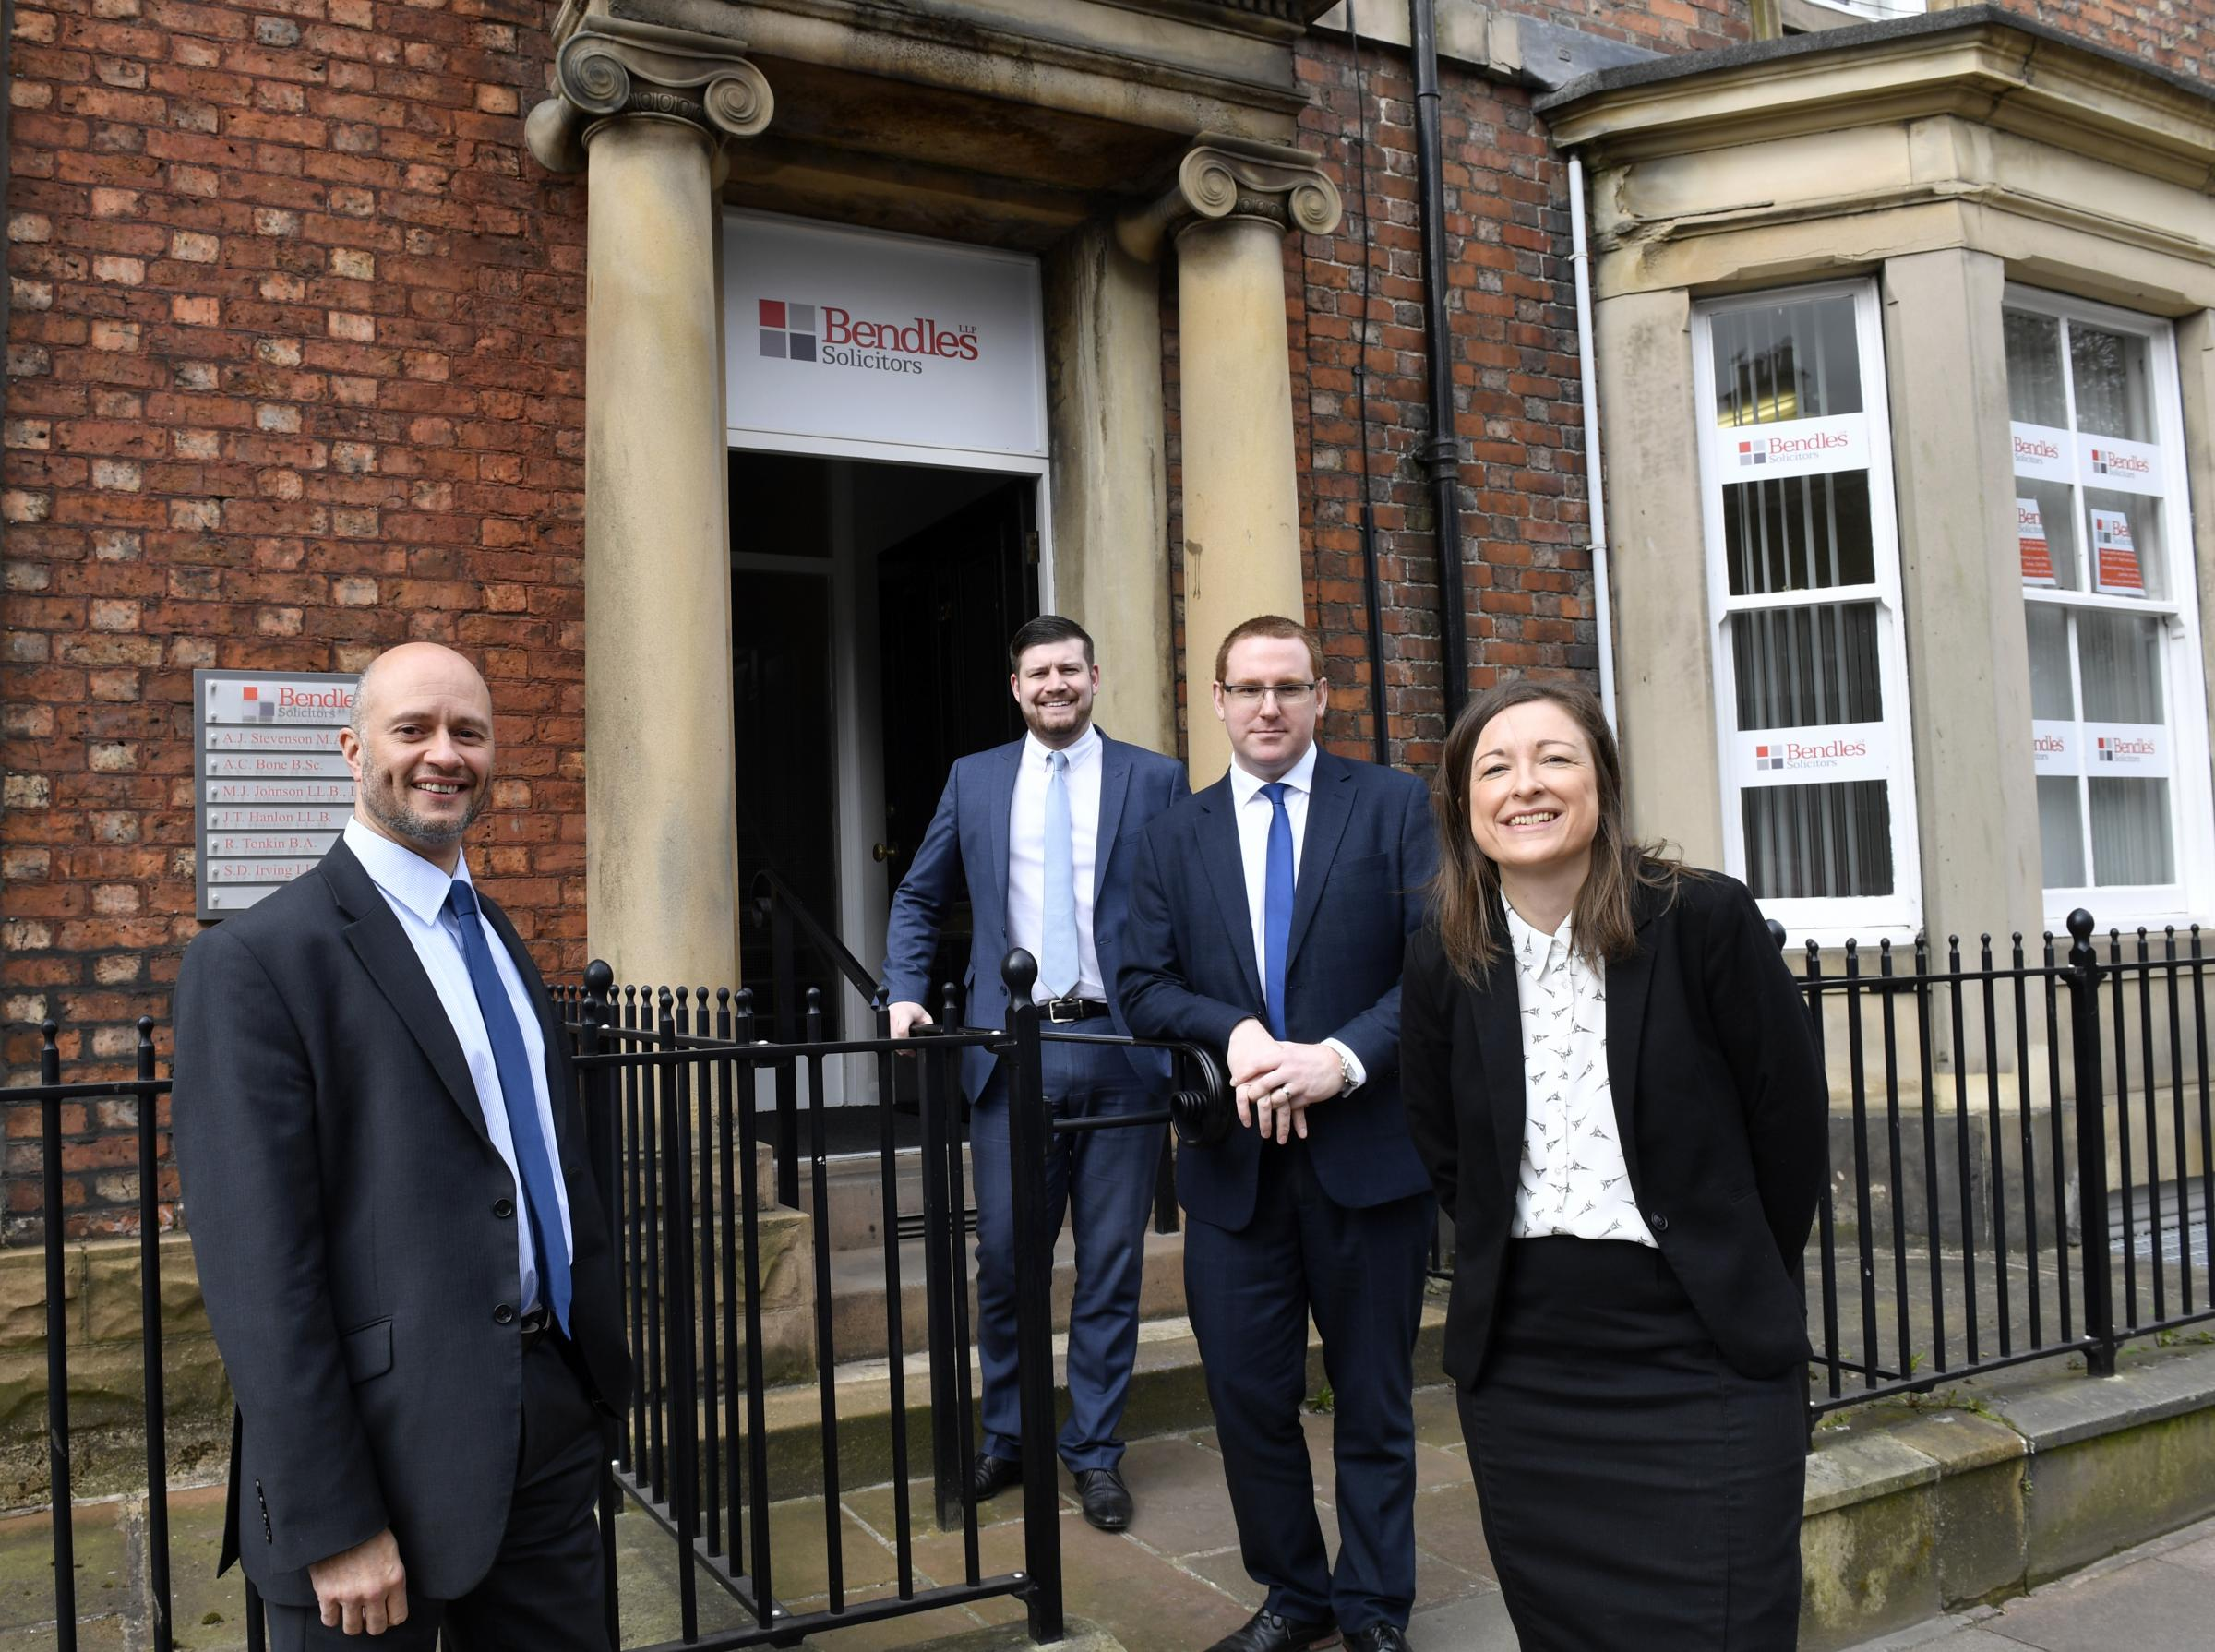 Carlisle legal firm Bendles Solicitors are moving from their Portland Square office to premises at Parkhouse, Kingstown, Carlisle. Michael Johnson, Stuart Irving, Jonty Hanlon and Rebecca Tonkin: